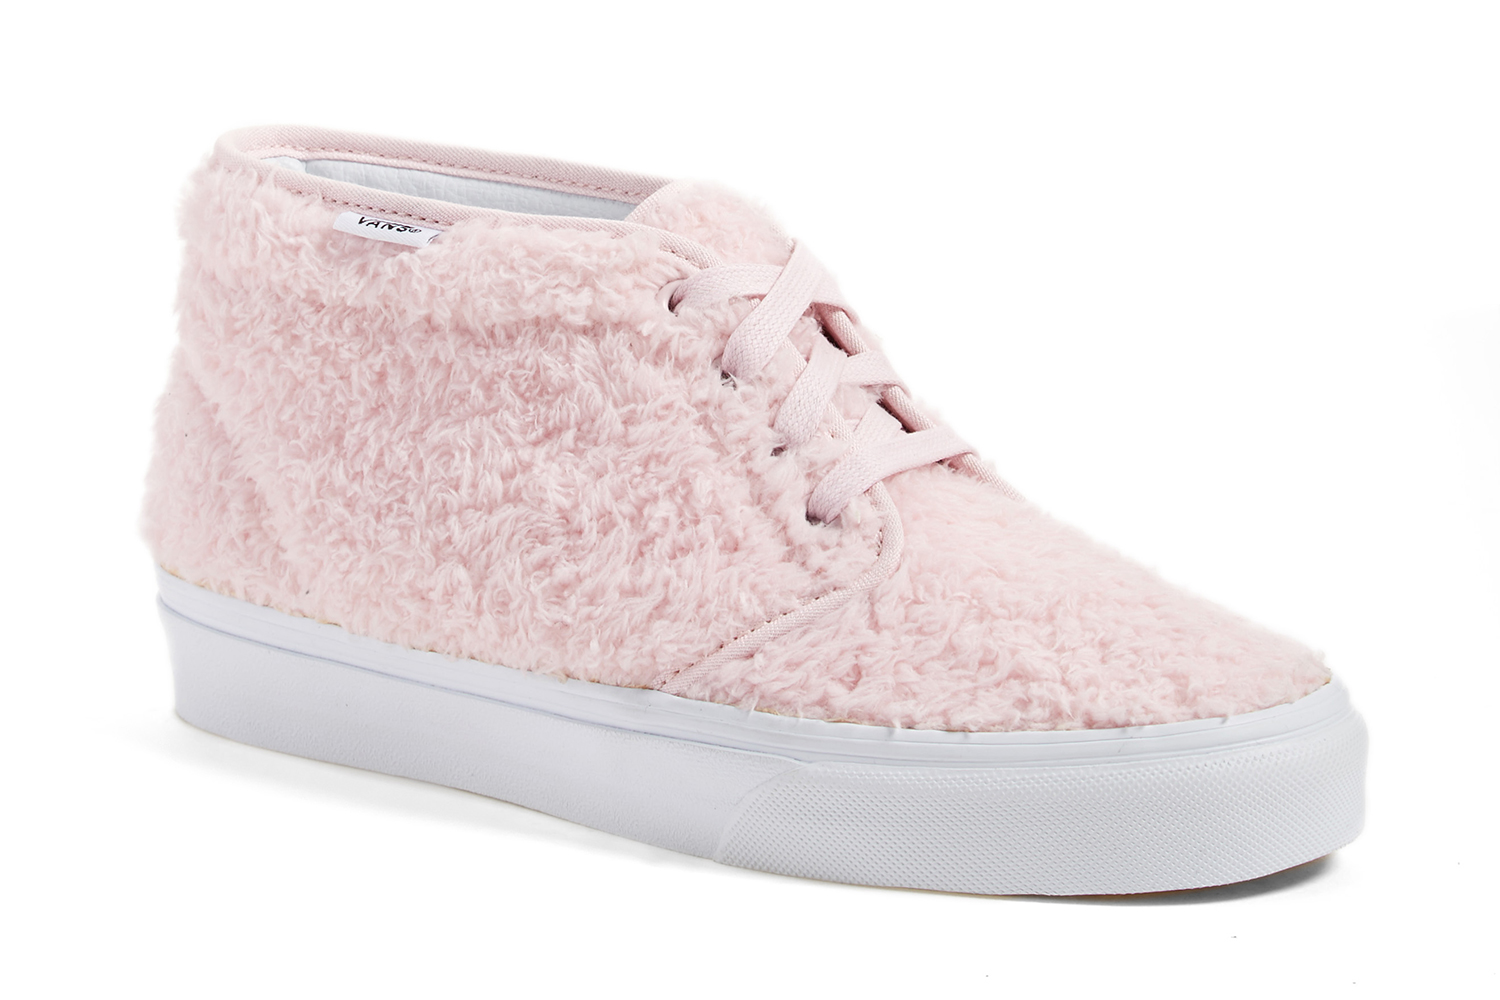 Pop-In@Nordstrom : une inventive collaboration Vans x Nordstrom